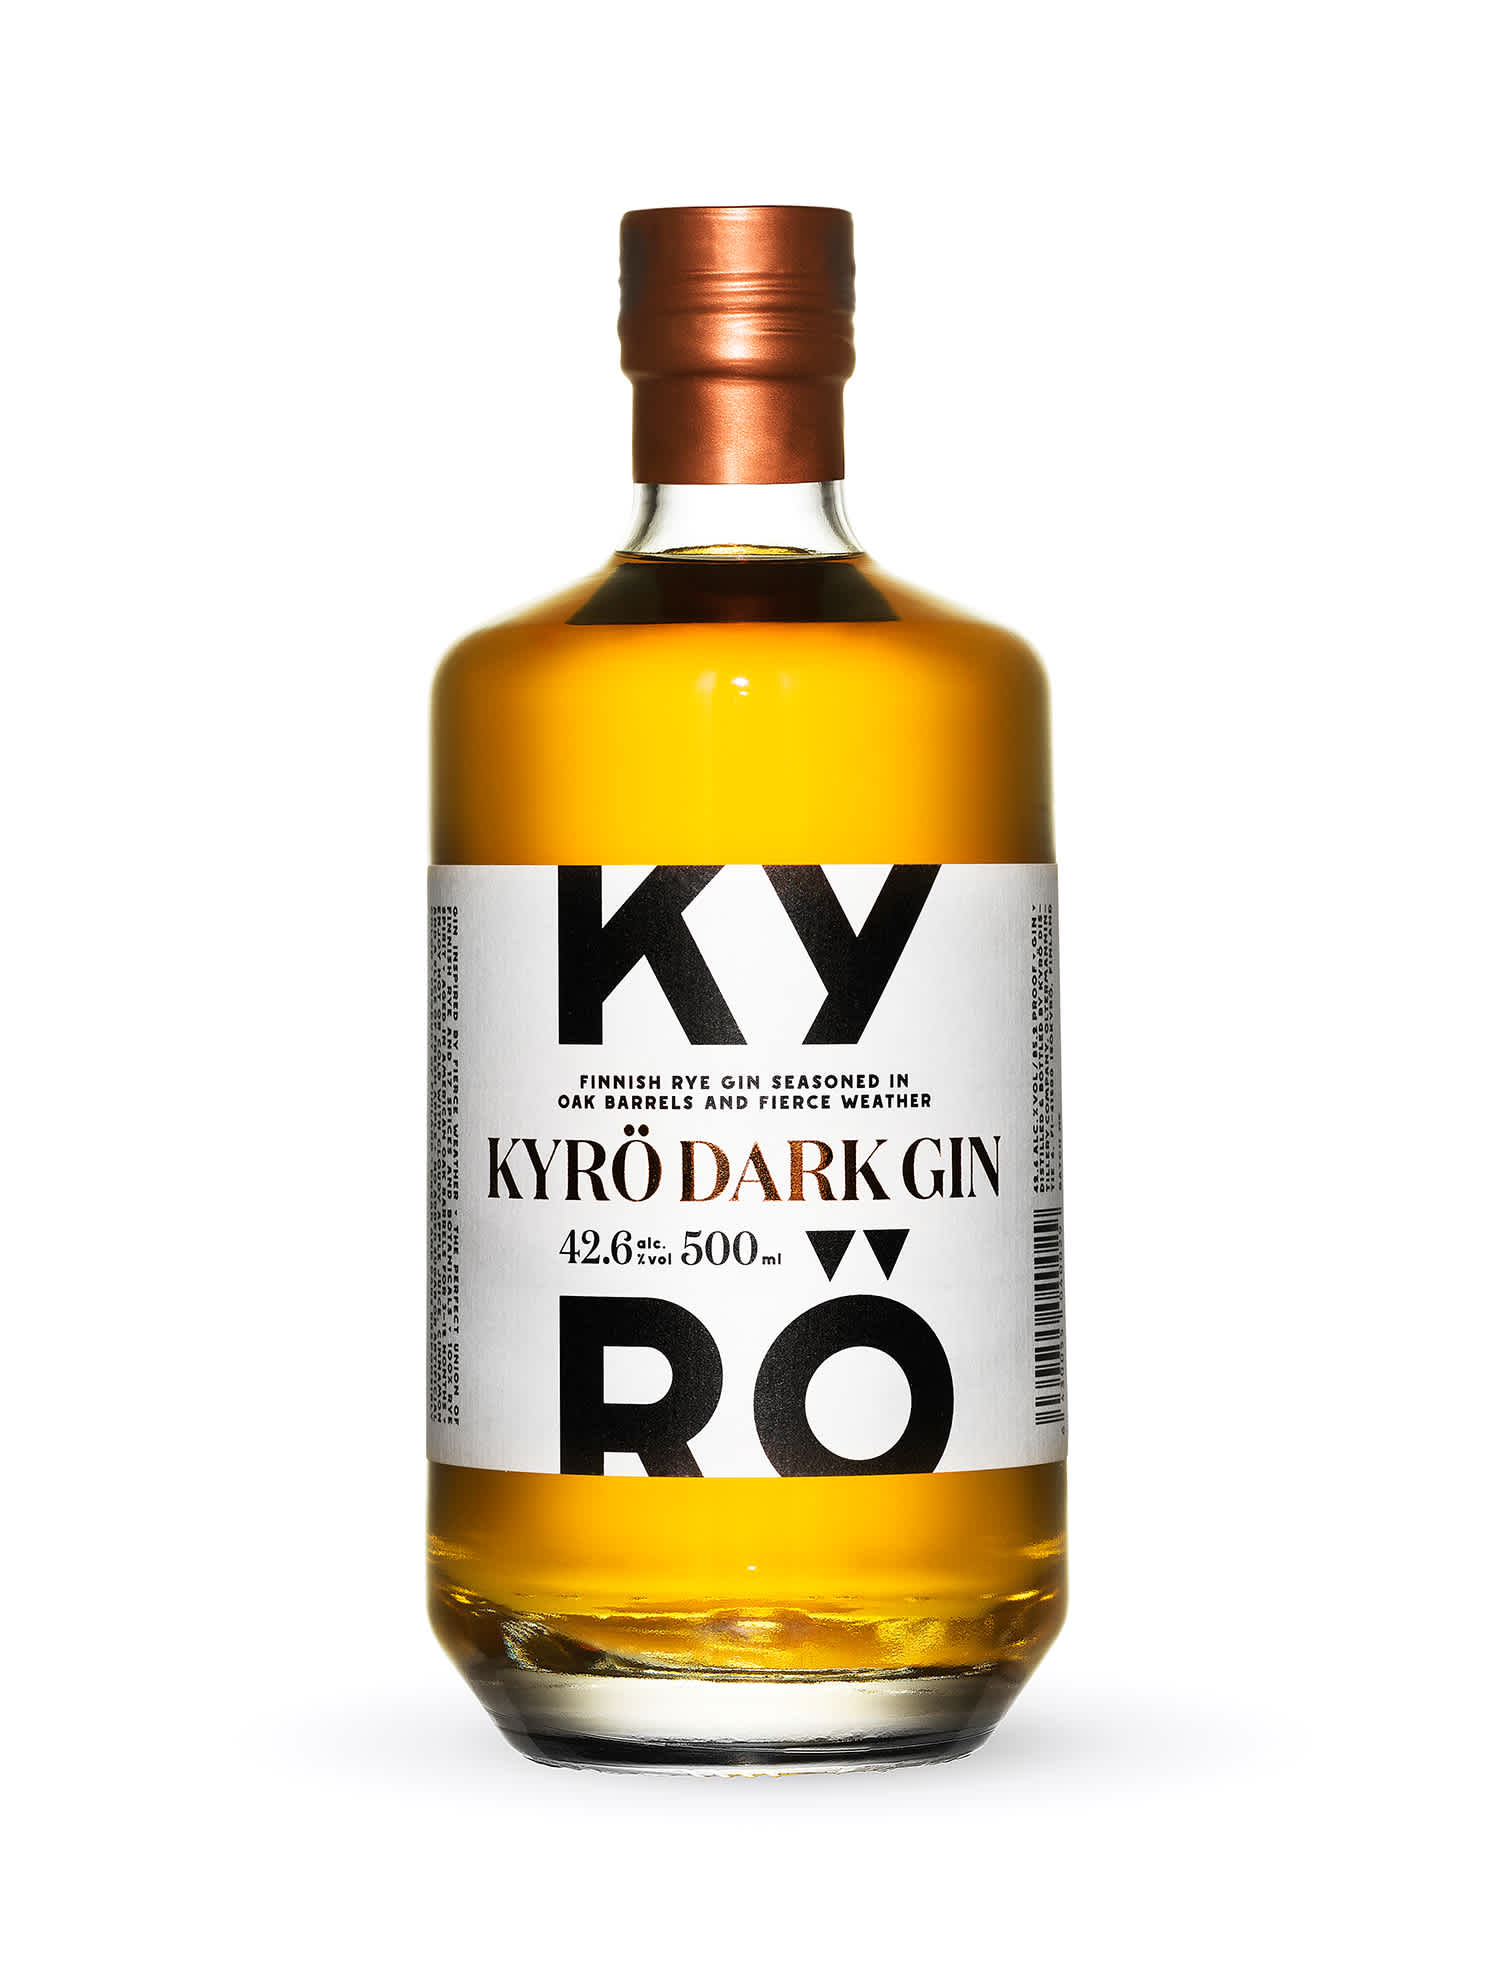 Product photo: a 500ml clear bottle of Kyrö Gin, which is a dark, nutty brown, made by the Kyrö Distillery Company in Isokyrö, Finland.